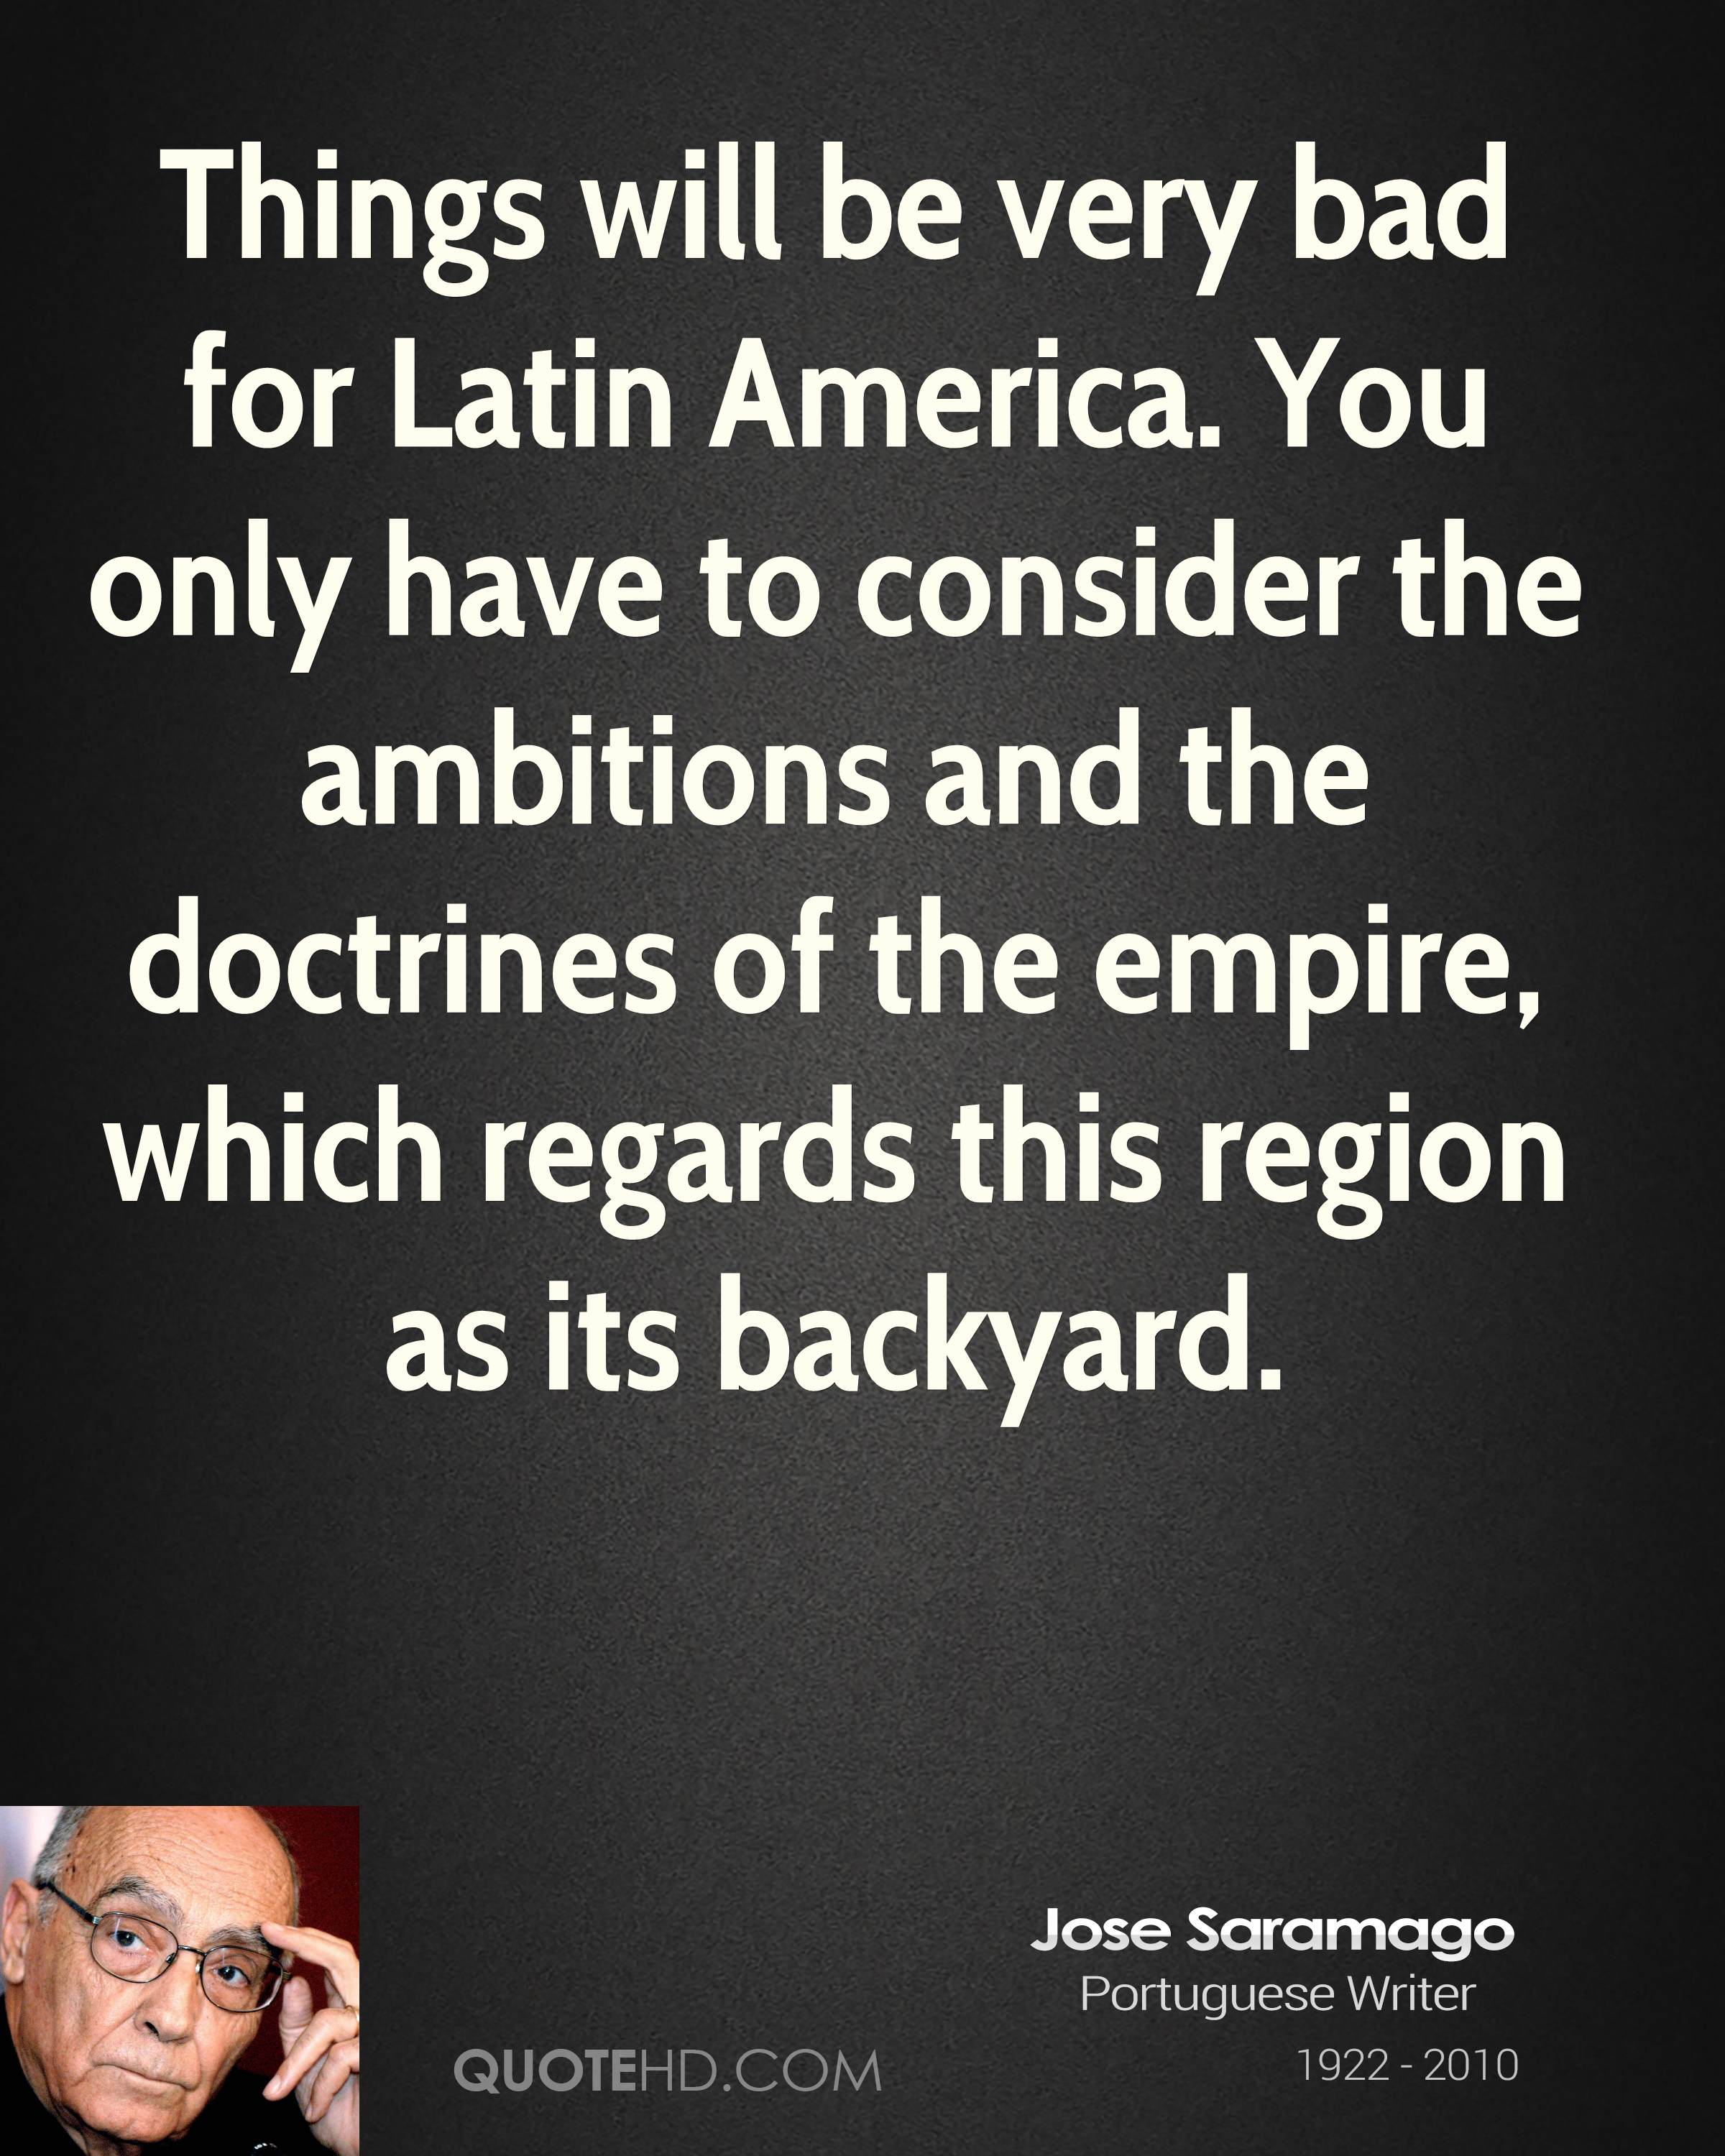 Things will be very bad for Latin America. You only have to consider the ambitions and the doctrines of the empire, which regards this region as its backyard.